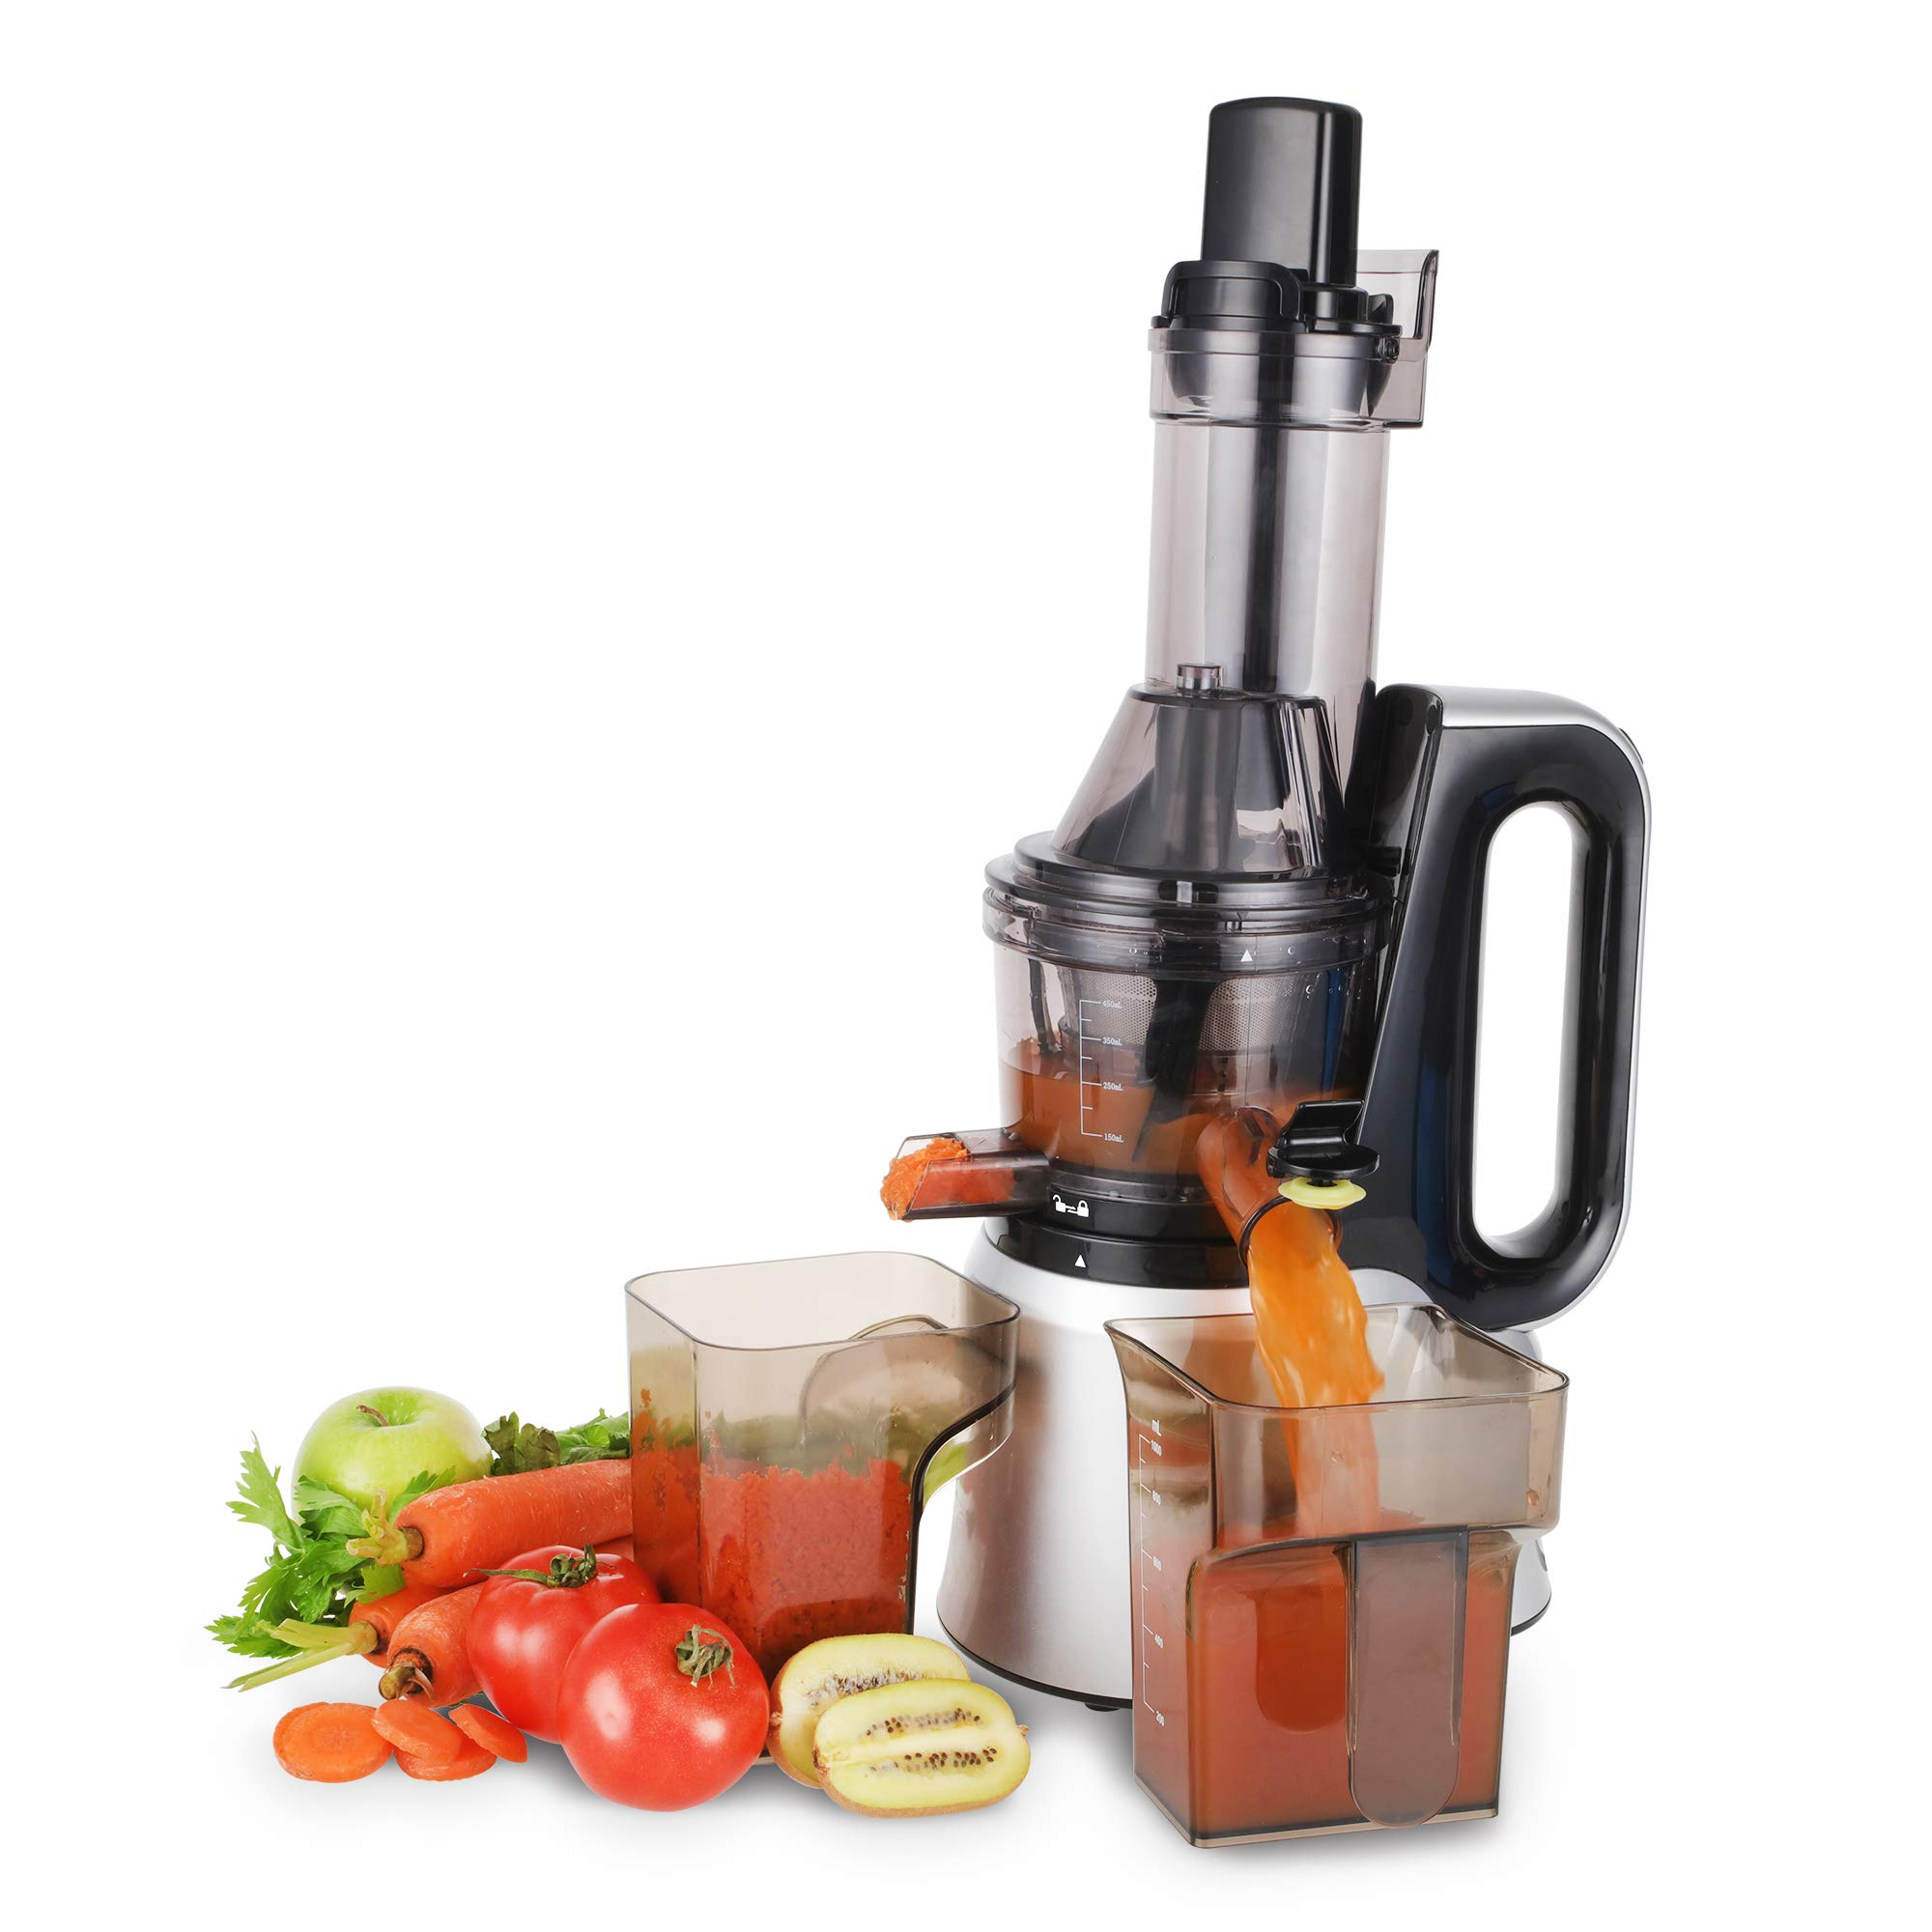 Cusimax CMSJ-800S 240W Slow Juicer,50 RPMs Quiet Fruit Vegetable Masticating Juicer for Highly Efficient Juice Extraction, Sliver by CUSIMAX